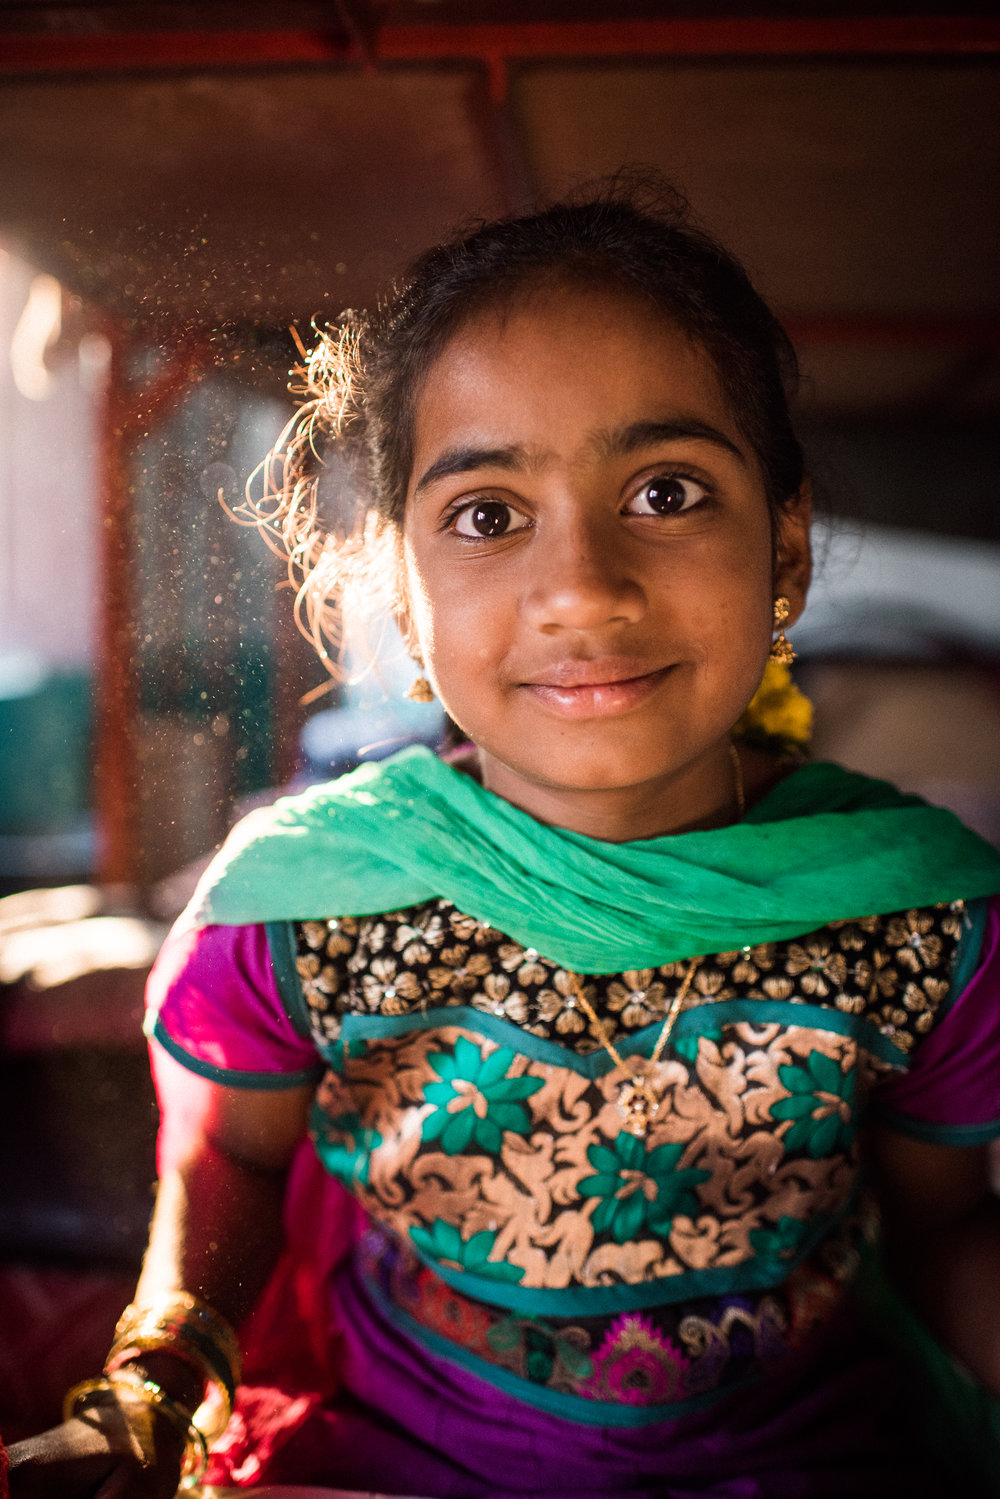 INDIA_HUMANITARIAN_WORK_TARASHUPE_PHOTOGRAPHY_016.jpg